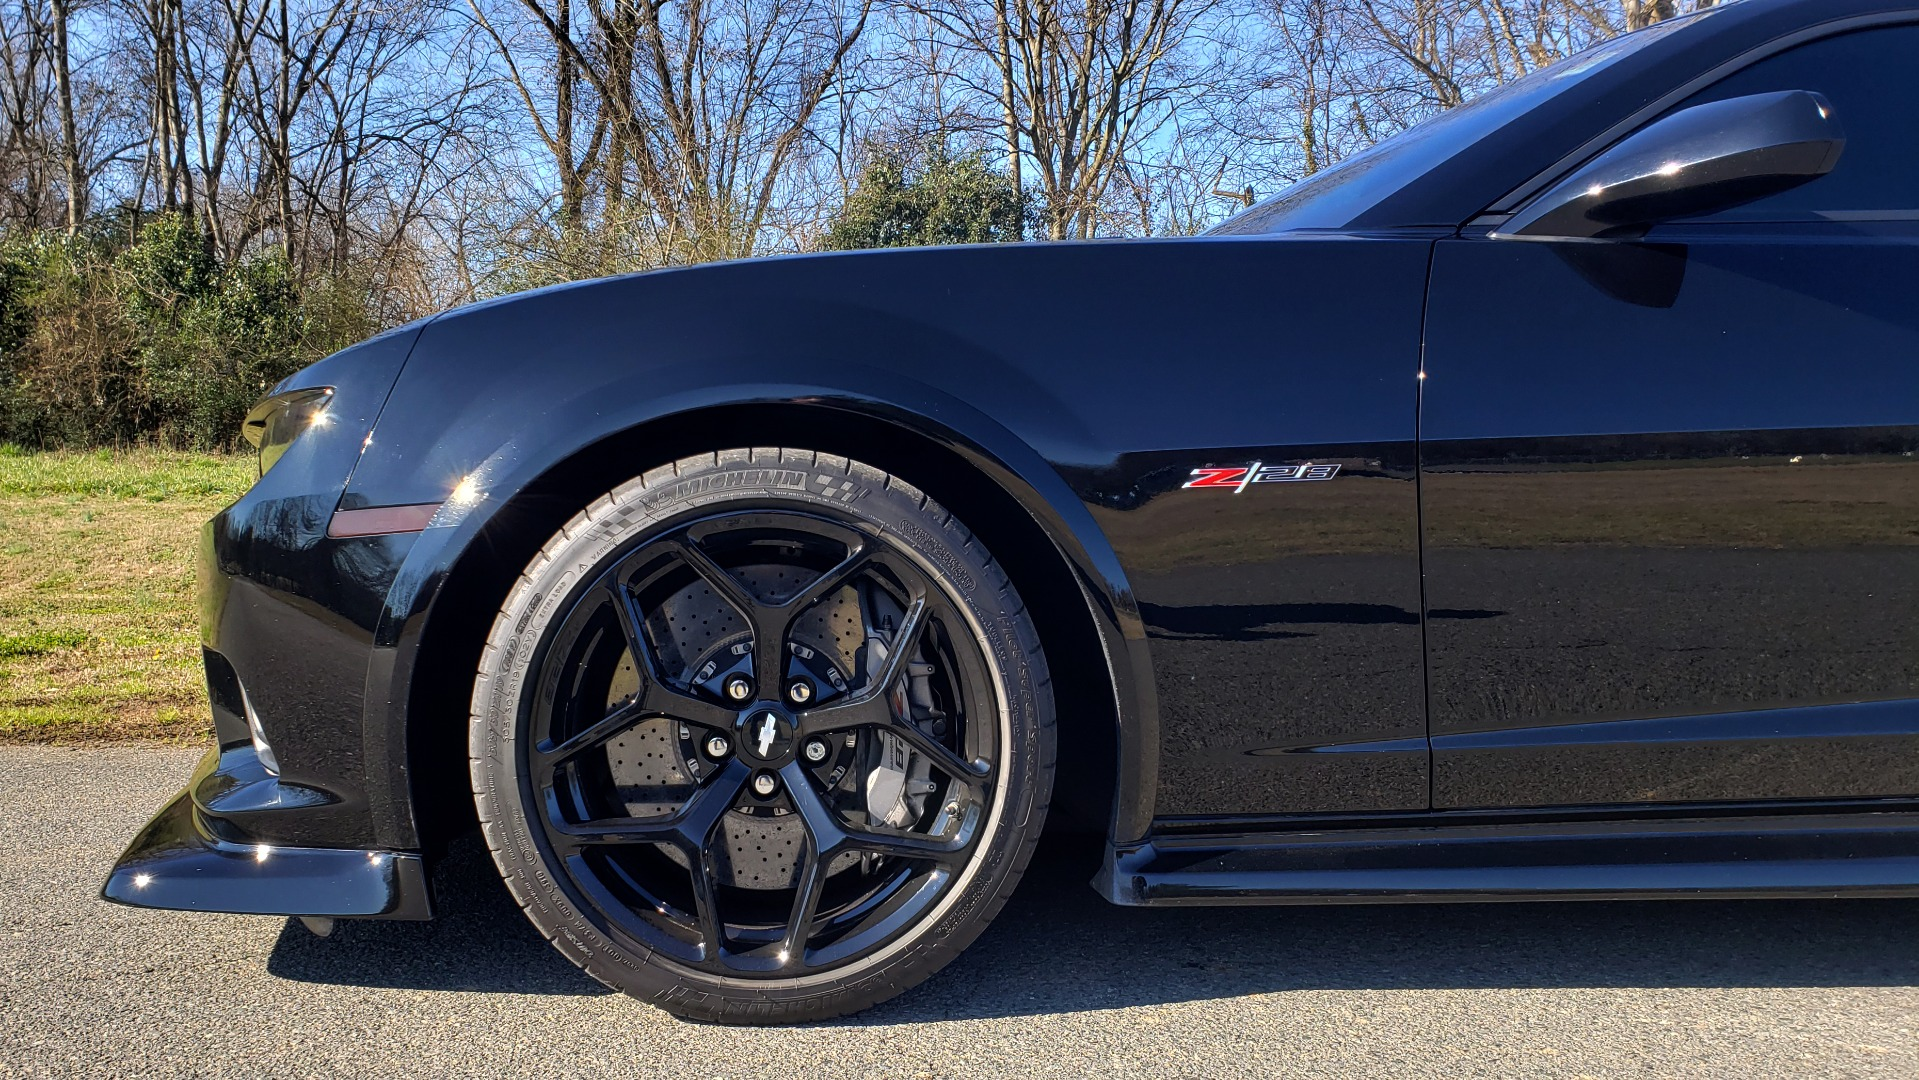 Used 2014 Chevrolet CAMARO Z/28 / 427 7.0L V8 505HP / RADIO / AIR CONDITIONING for sale Sold at Formula Imports in Charlotte NC 28227 22